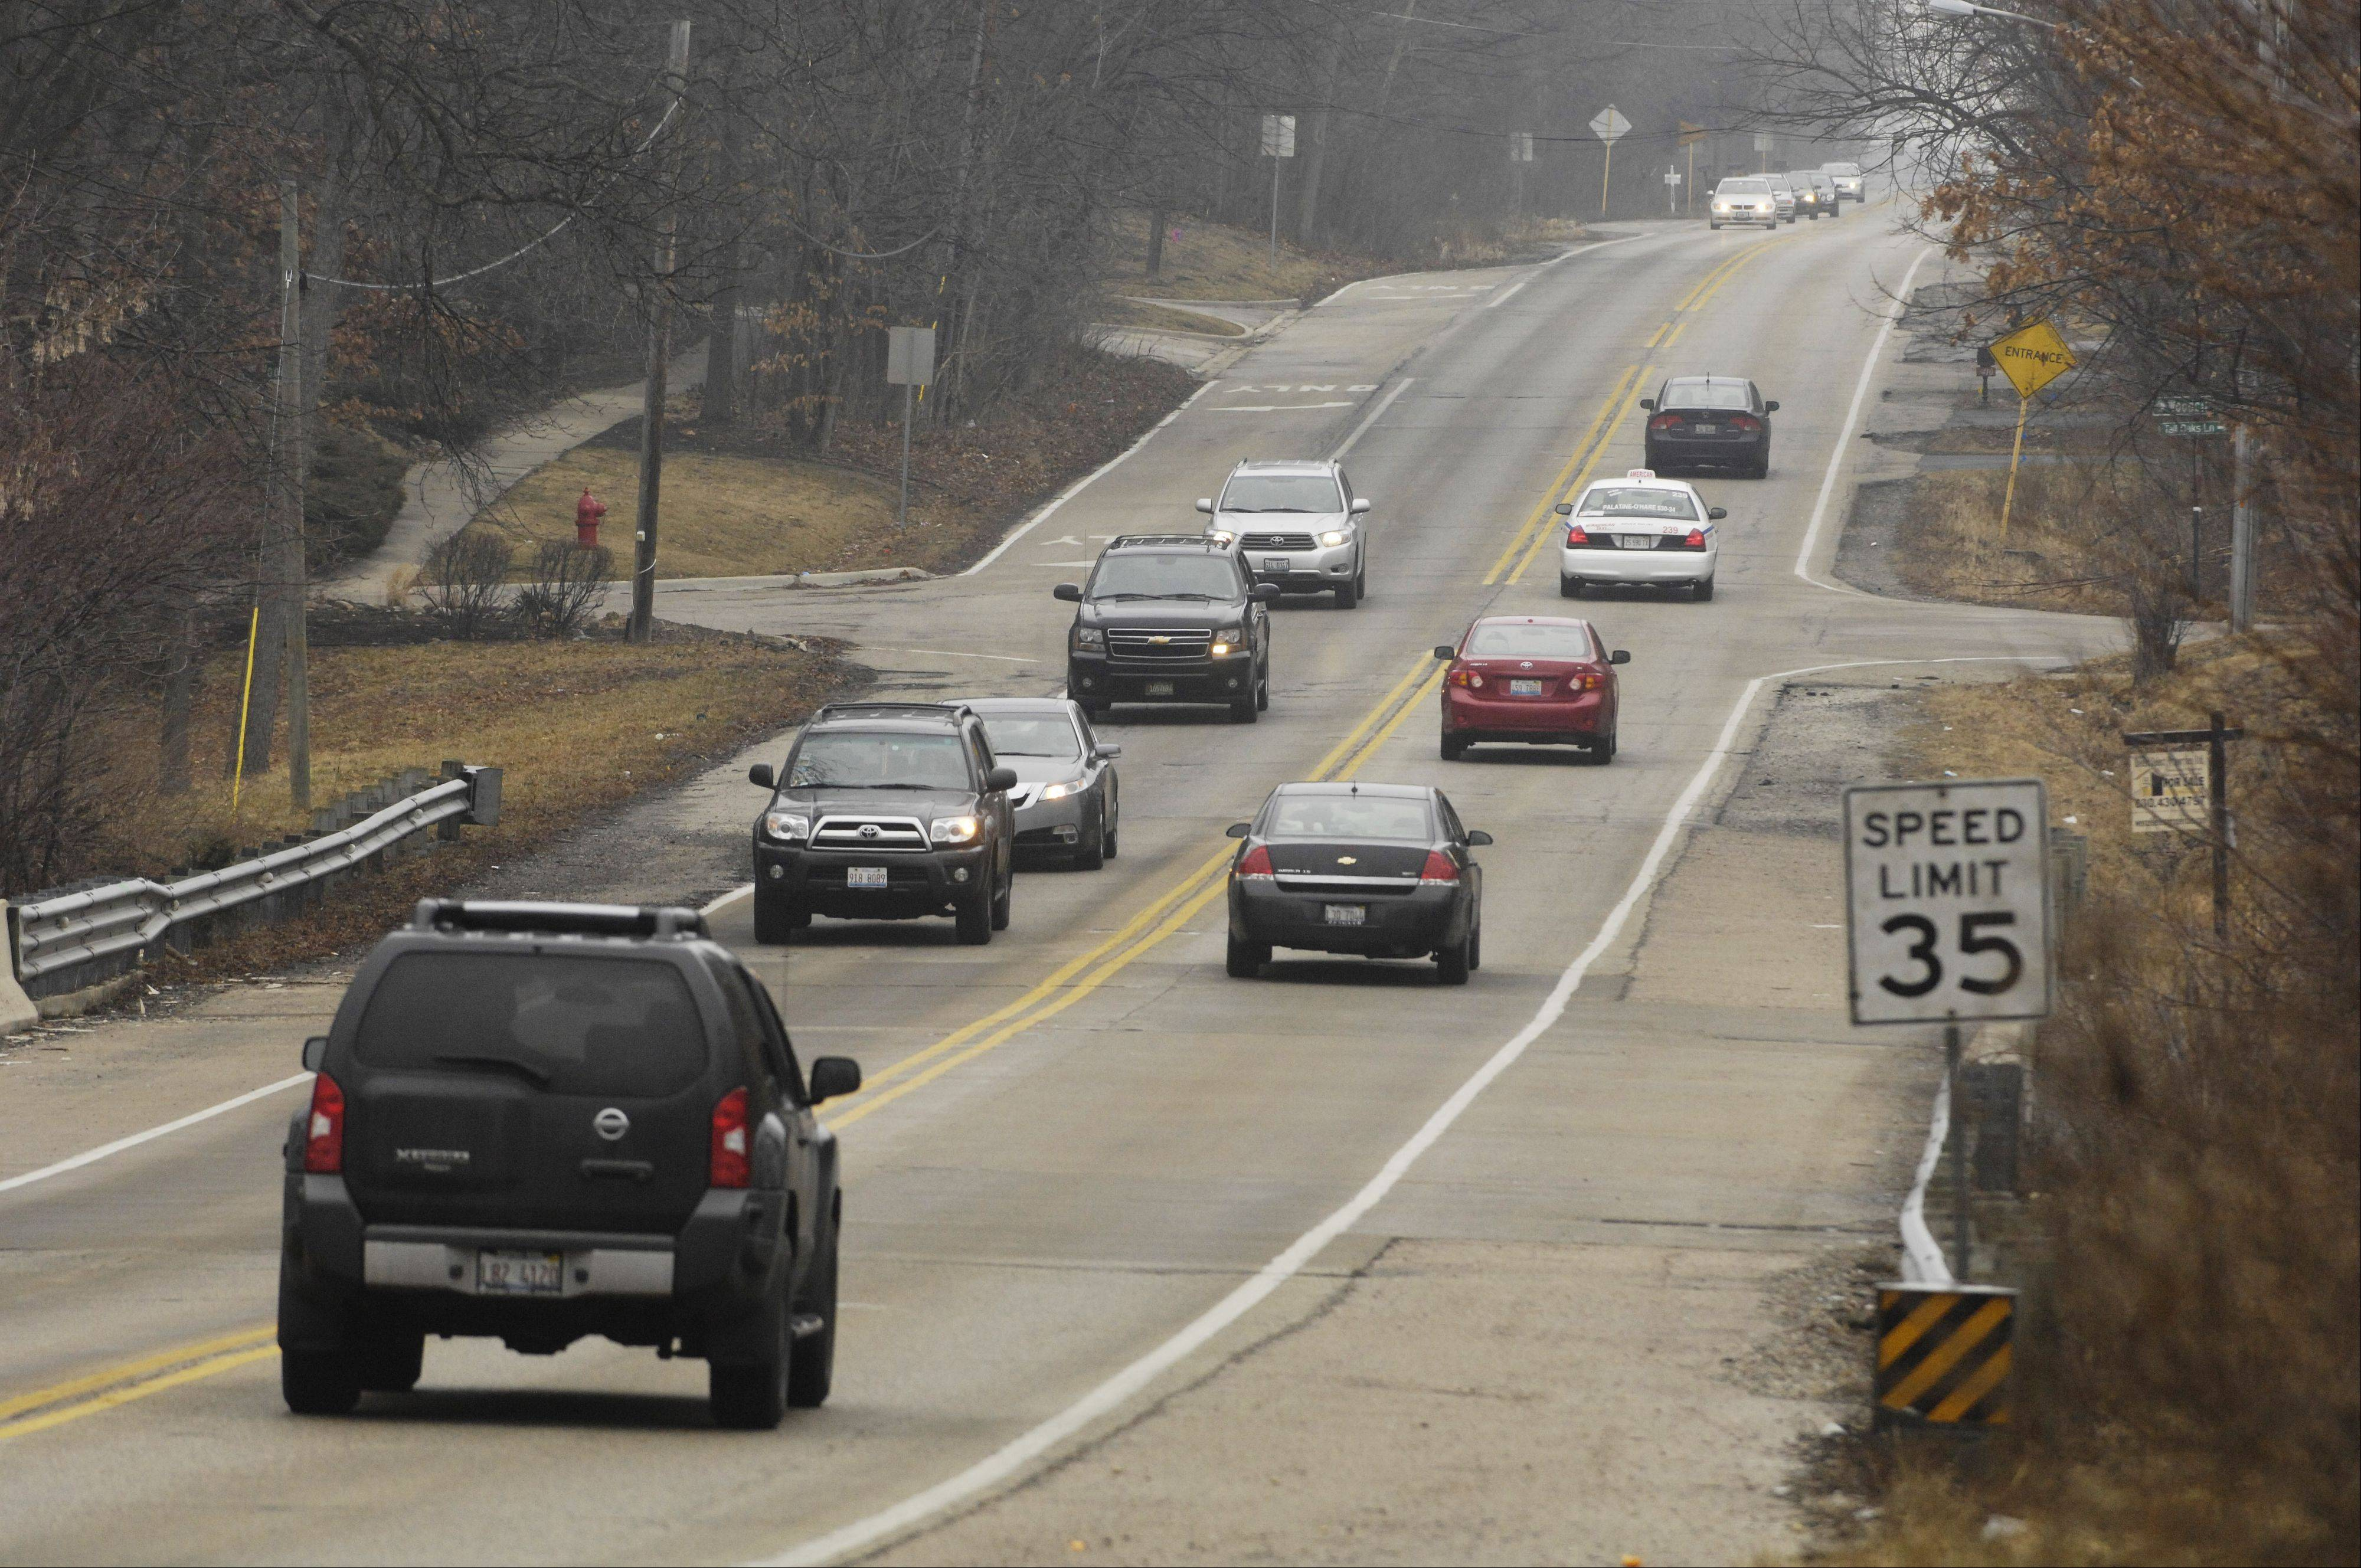 Rolling Meadows is discussing plans for expanding Meacham Road, increasing the number of lanes between Emerson Avenue and Algonquin Road.